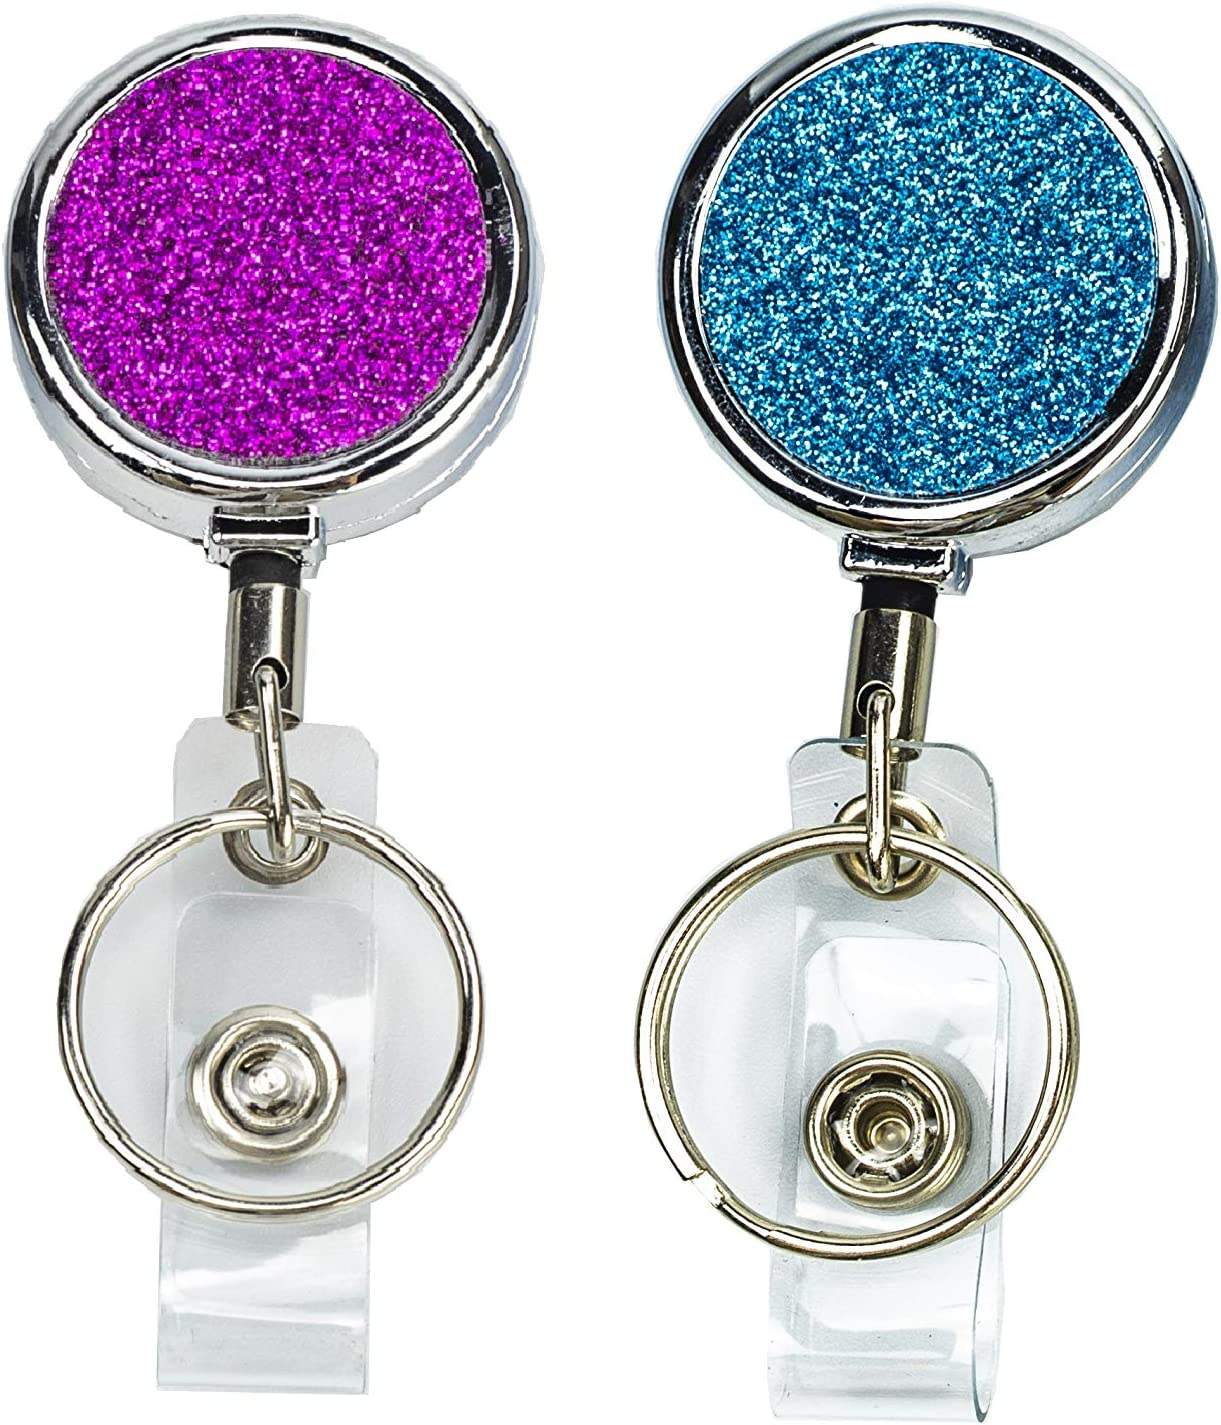 2 Pack Retractable Badge Holder, Stainless Steel Badge Reel Retractable Card Holder with Key Ring Backing Belt Clip for Nurse, Volunteer, Teacher, Student, Office, Party Worker (Glitter Powder)